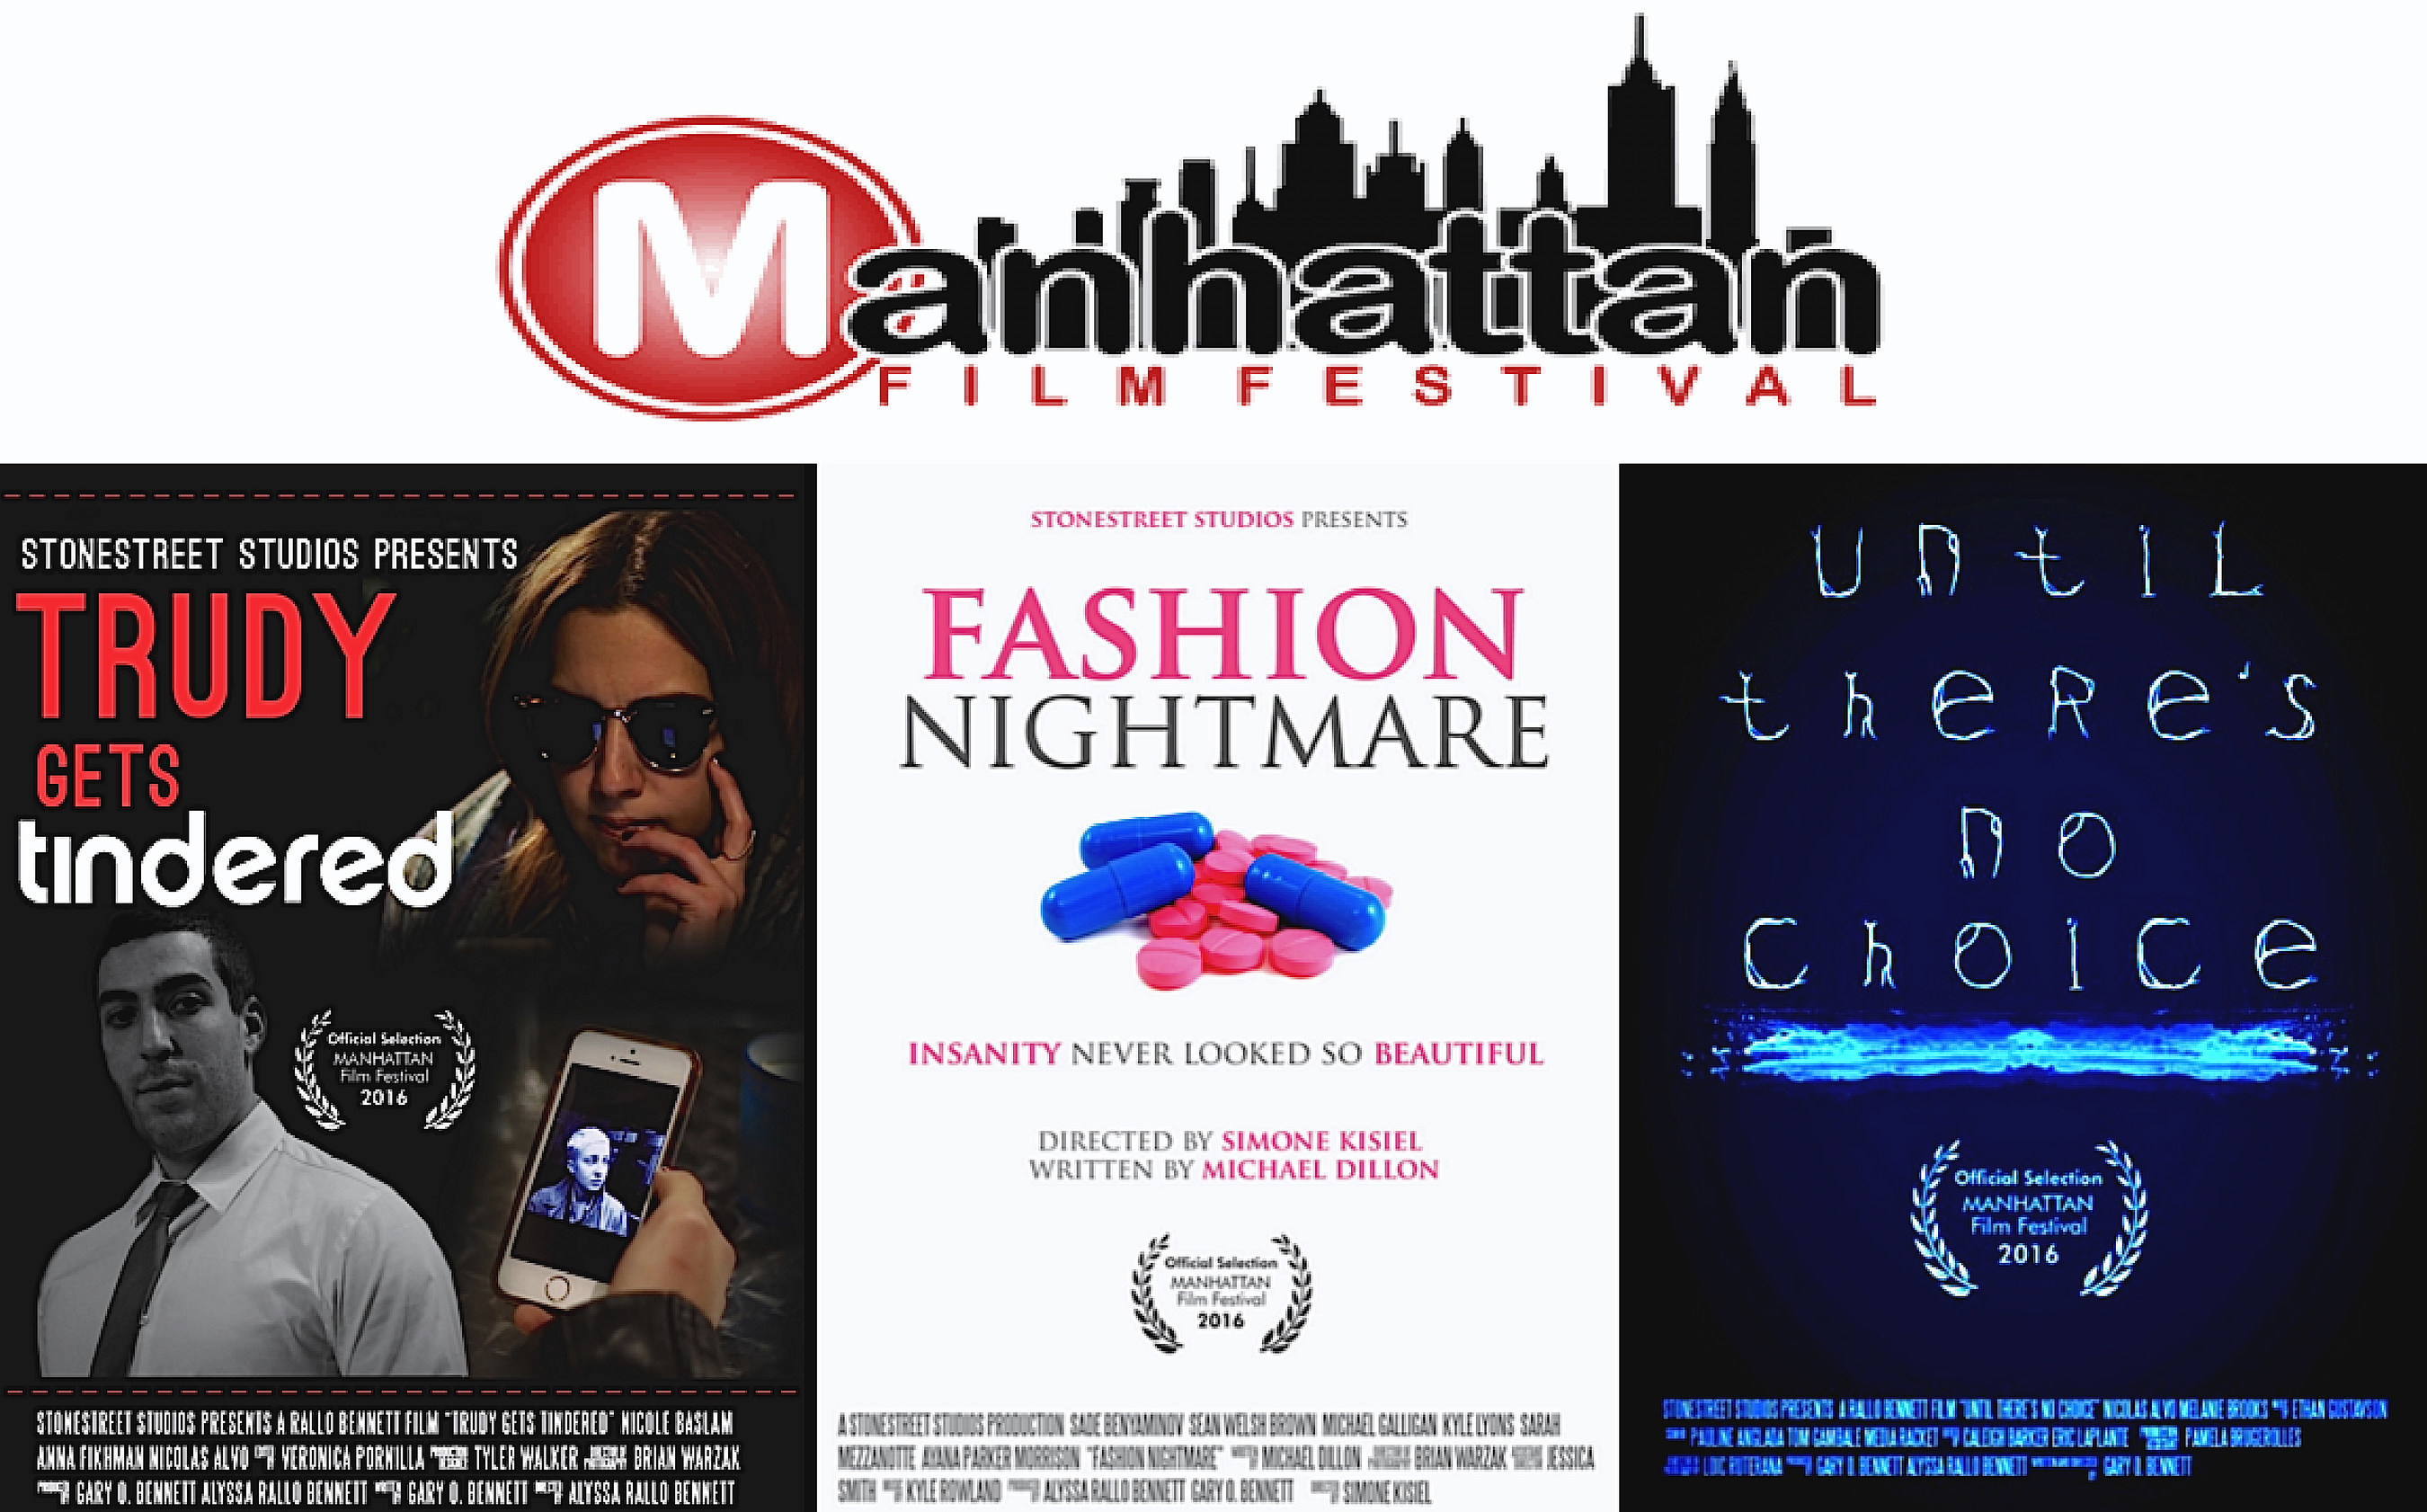 Stonestreet Shorts Take Off - Three Films Featured in Manhattan Film Festival and Licensing Deal with Shorts HD Imminent.